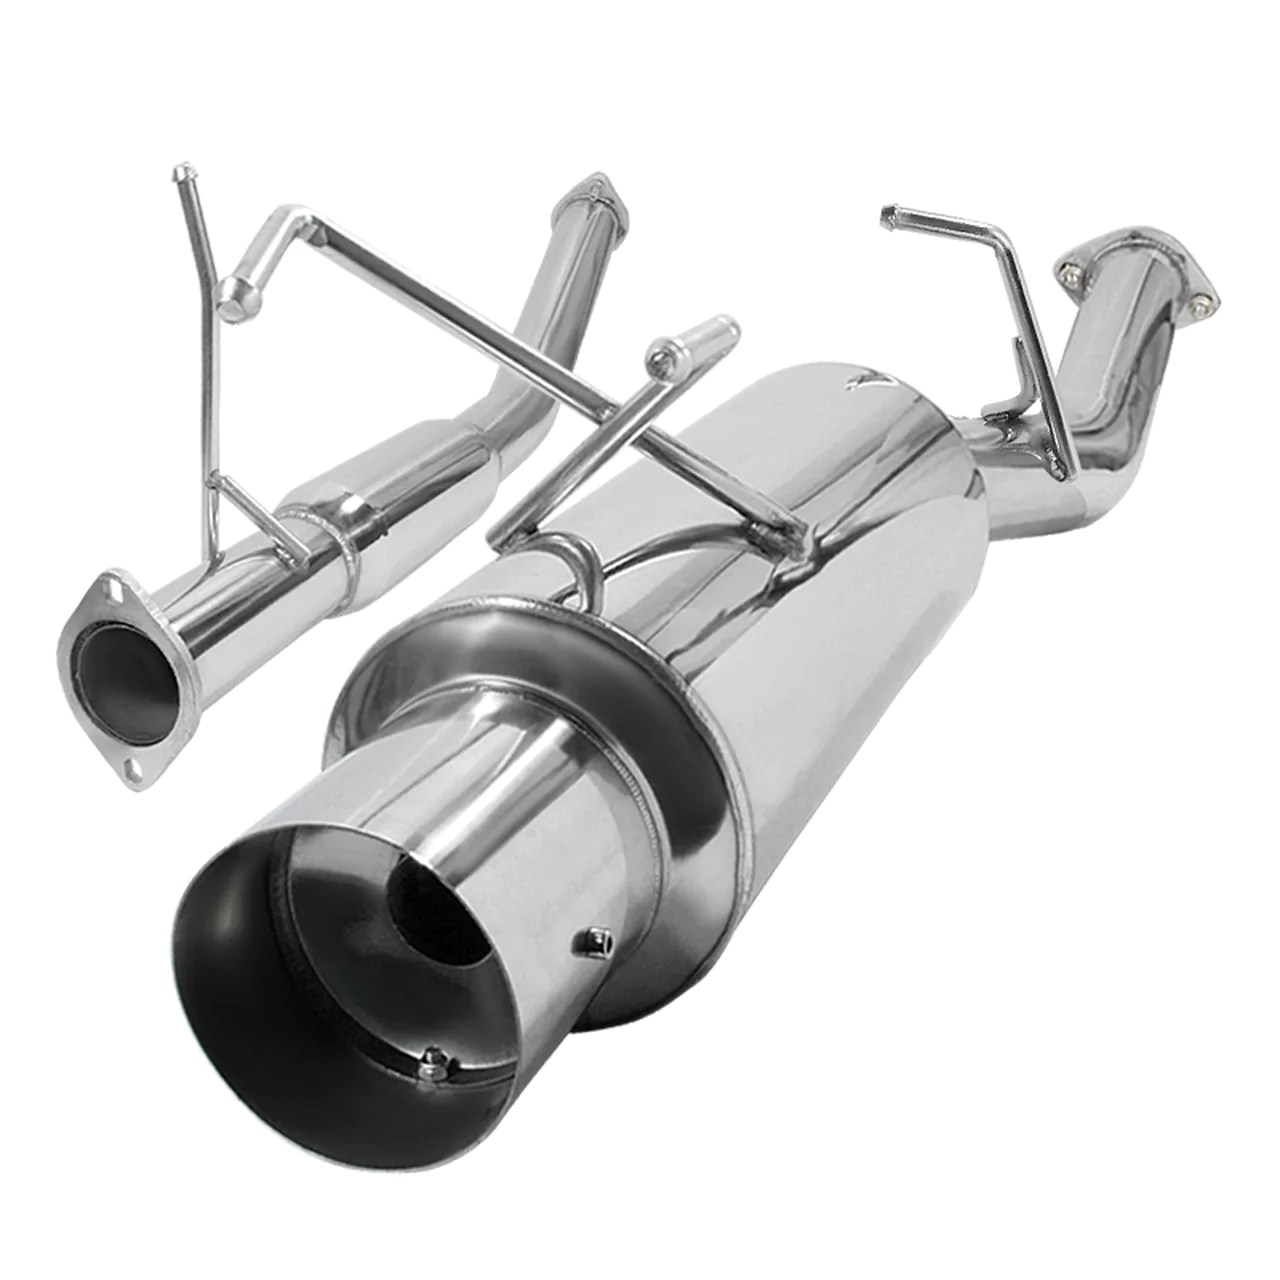 spec d tuning exhaust nissan 240sx s13 89 94 3 n1 muffler w polished or blue burnt tip